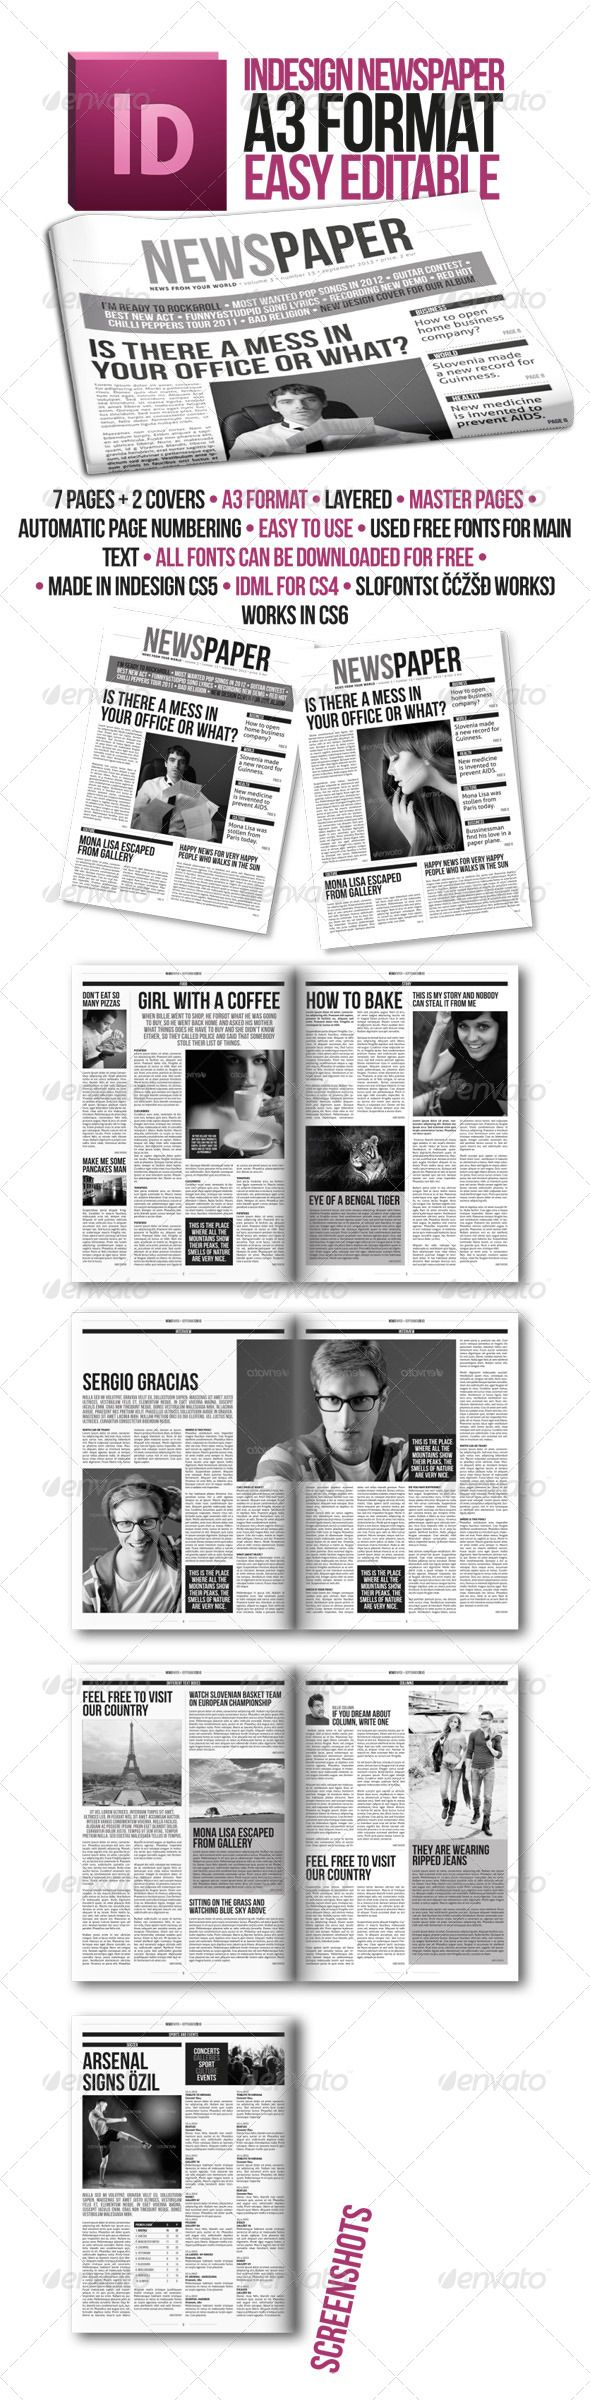 Indesign Modern Newspaper Magazine Template A3 | Newspaper, Template ...